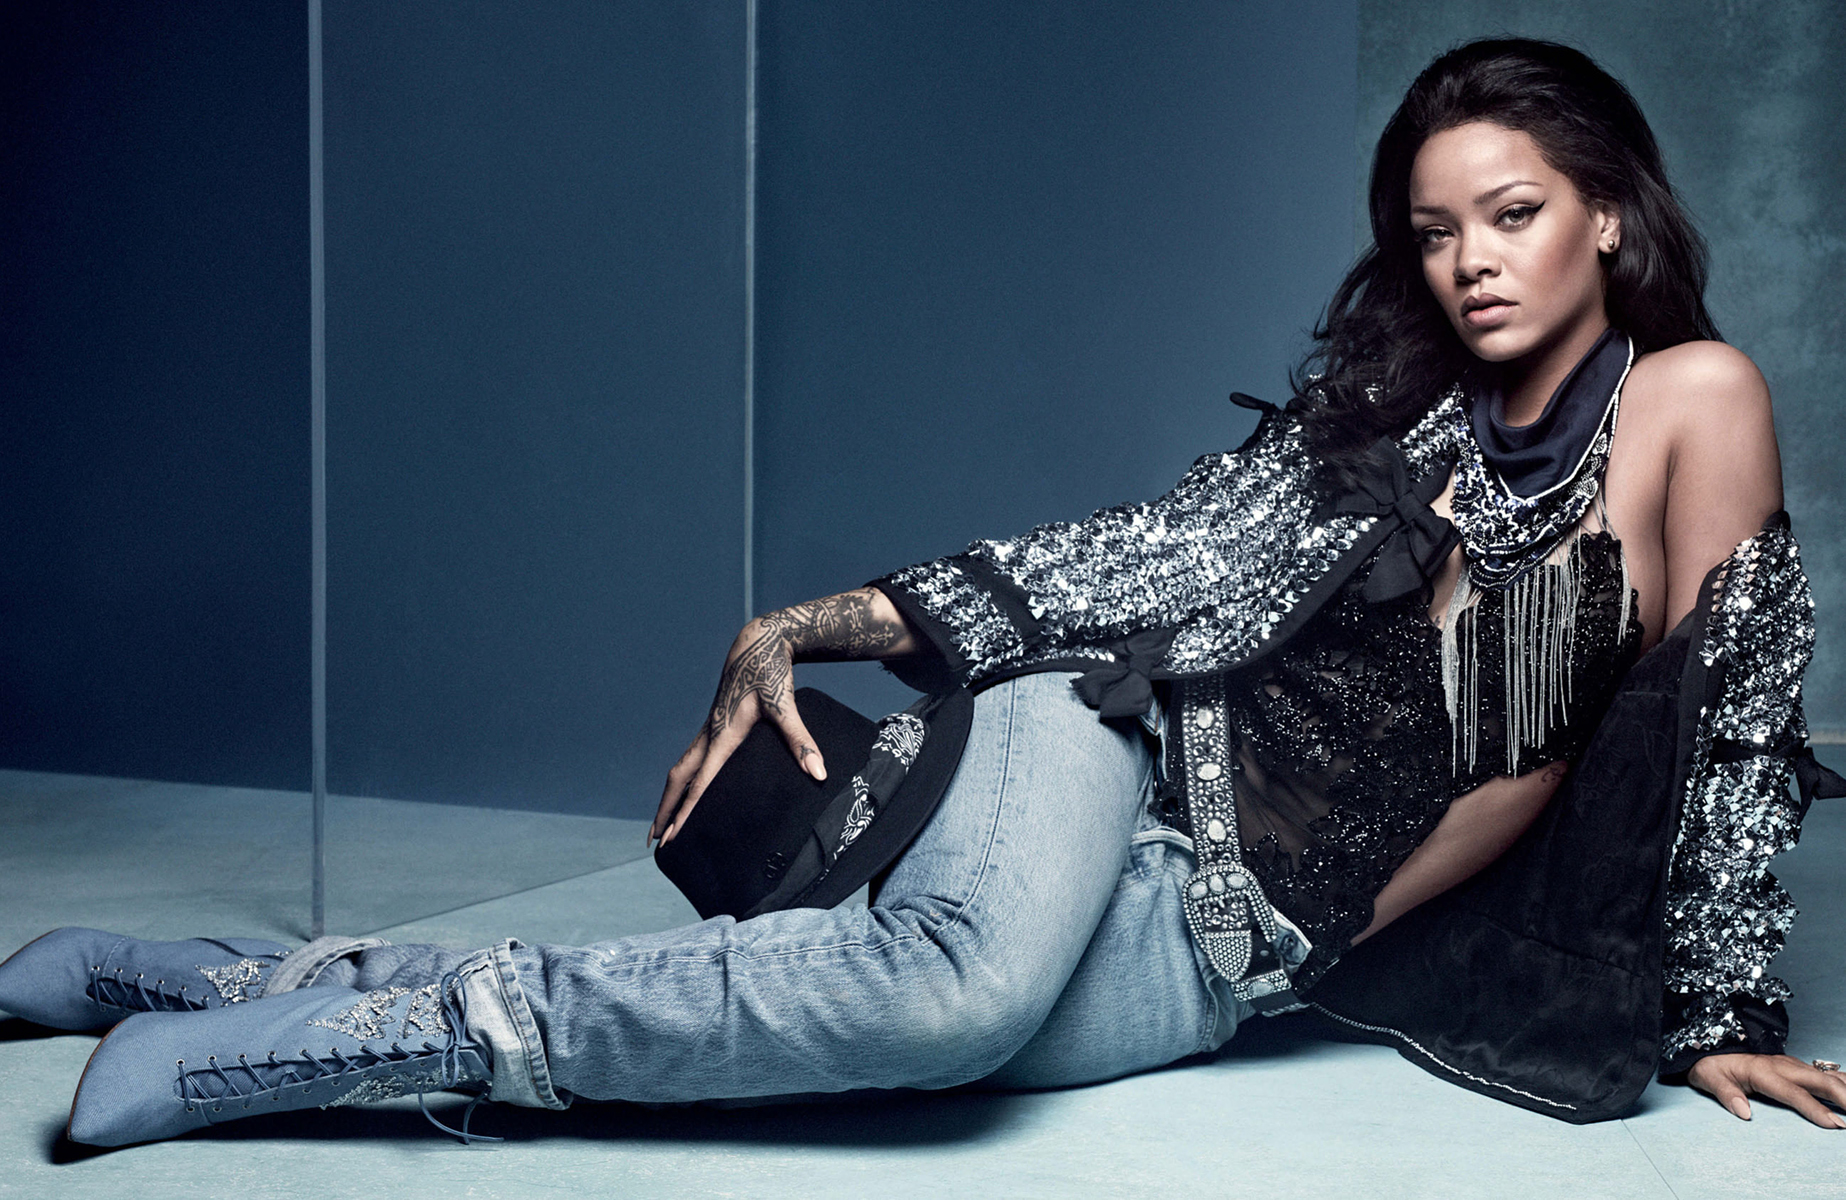 Rihanna for British Vogue